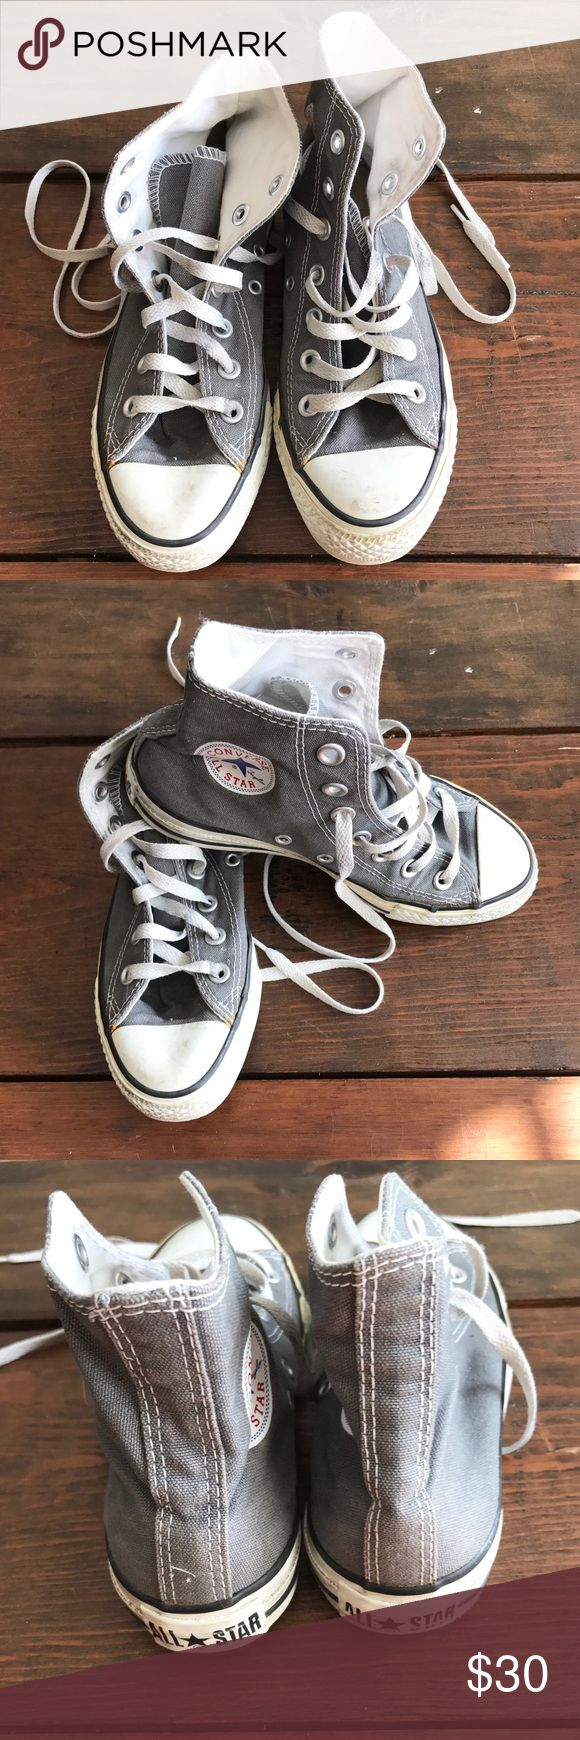 All Star Converse High Top Sneakers All Star Converse High Top Sneakers Gray Women's size 5. Good condition. Converse Shoes Sneakers